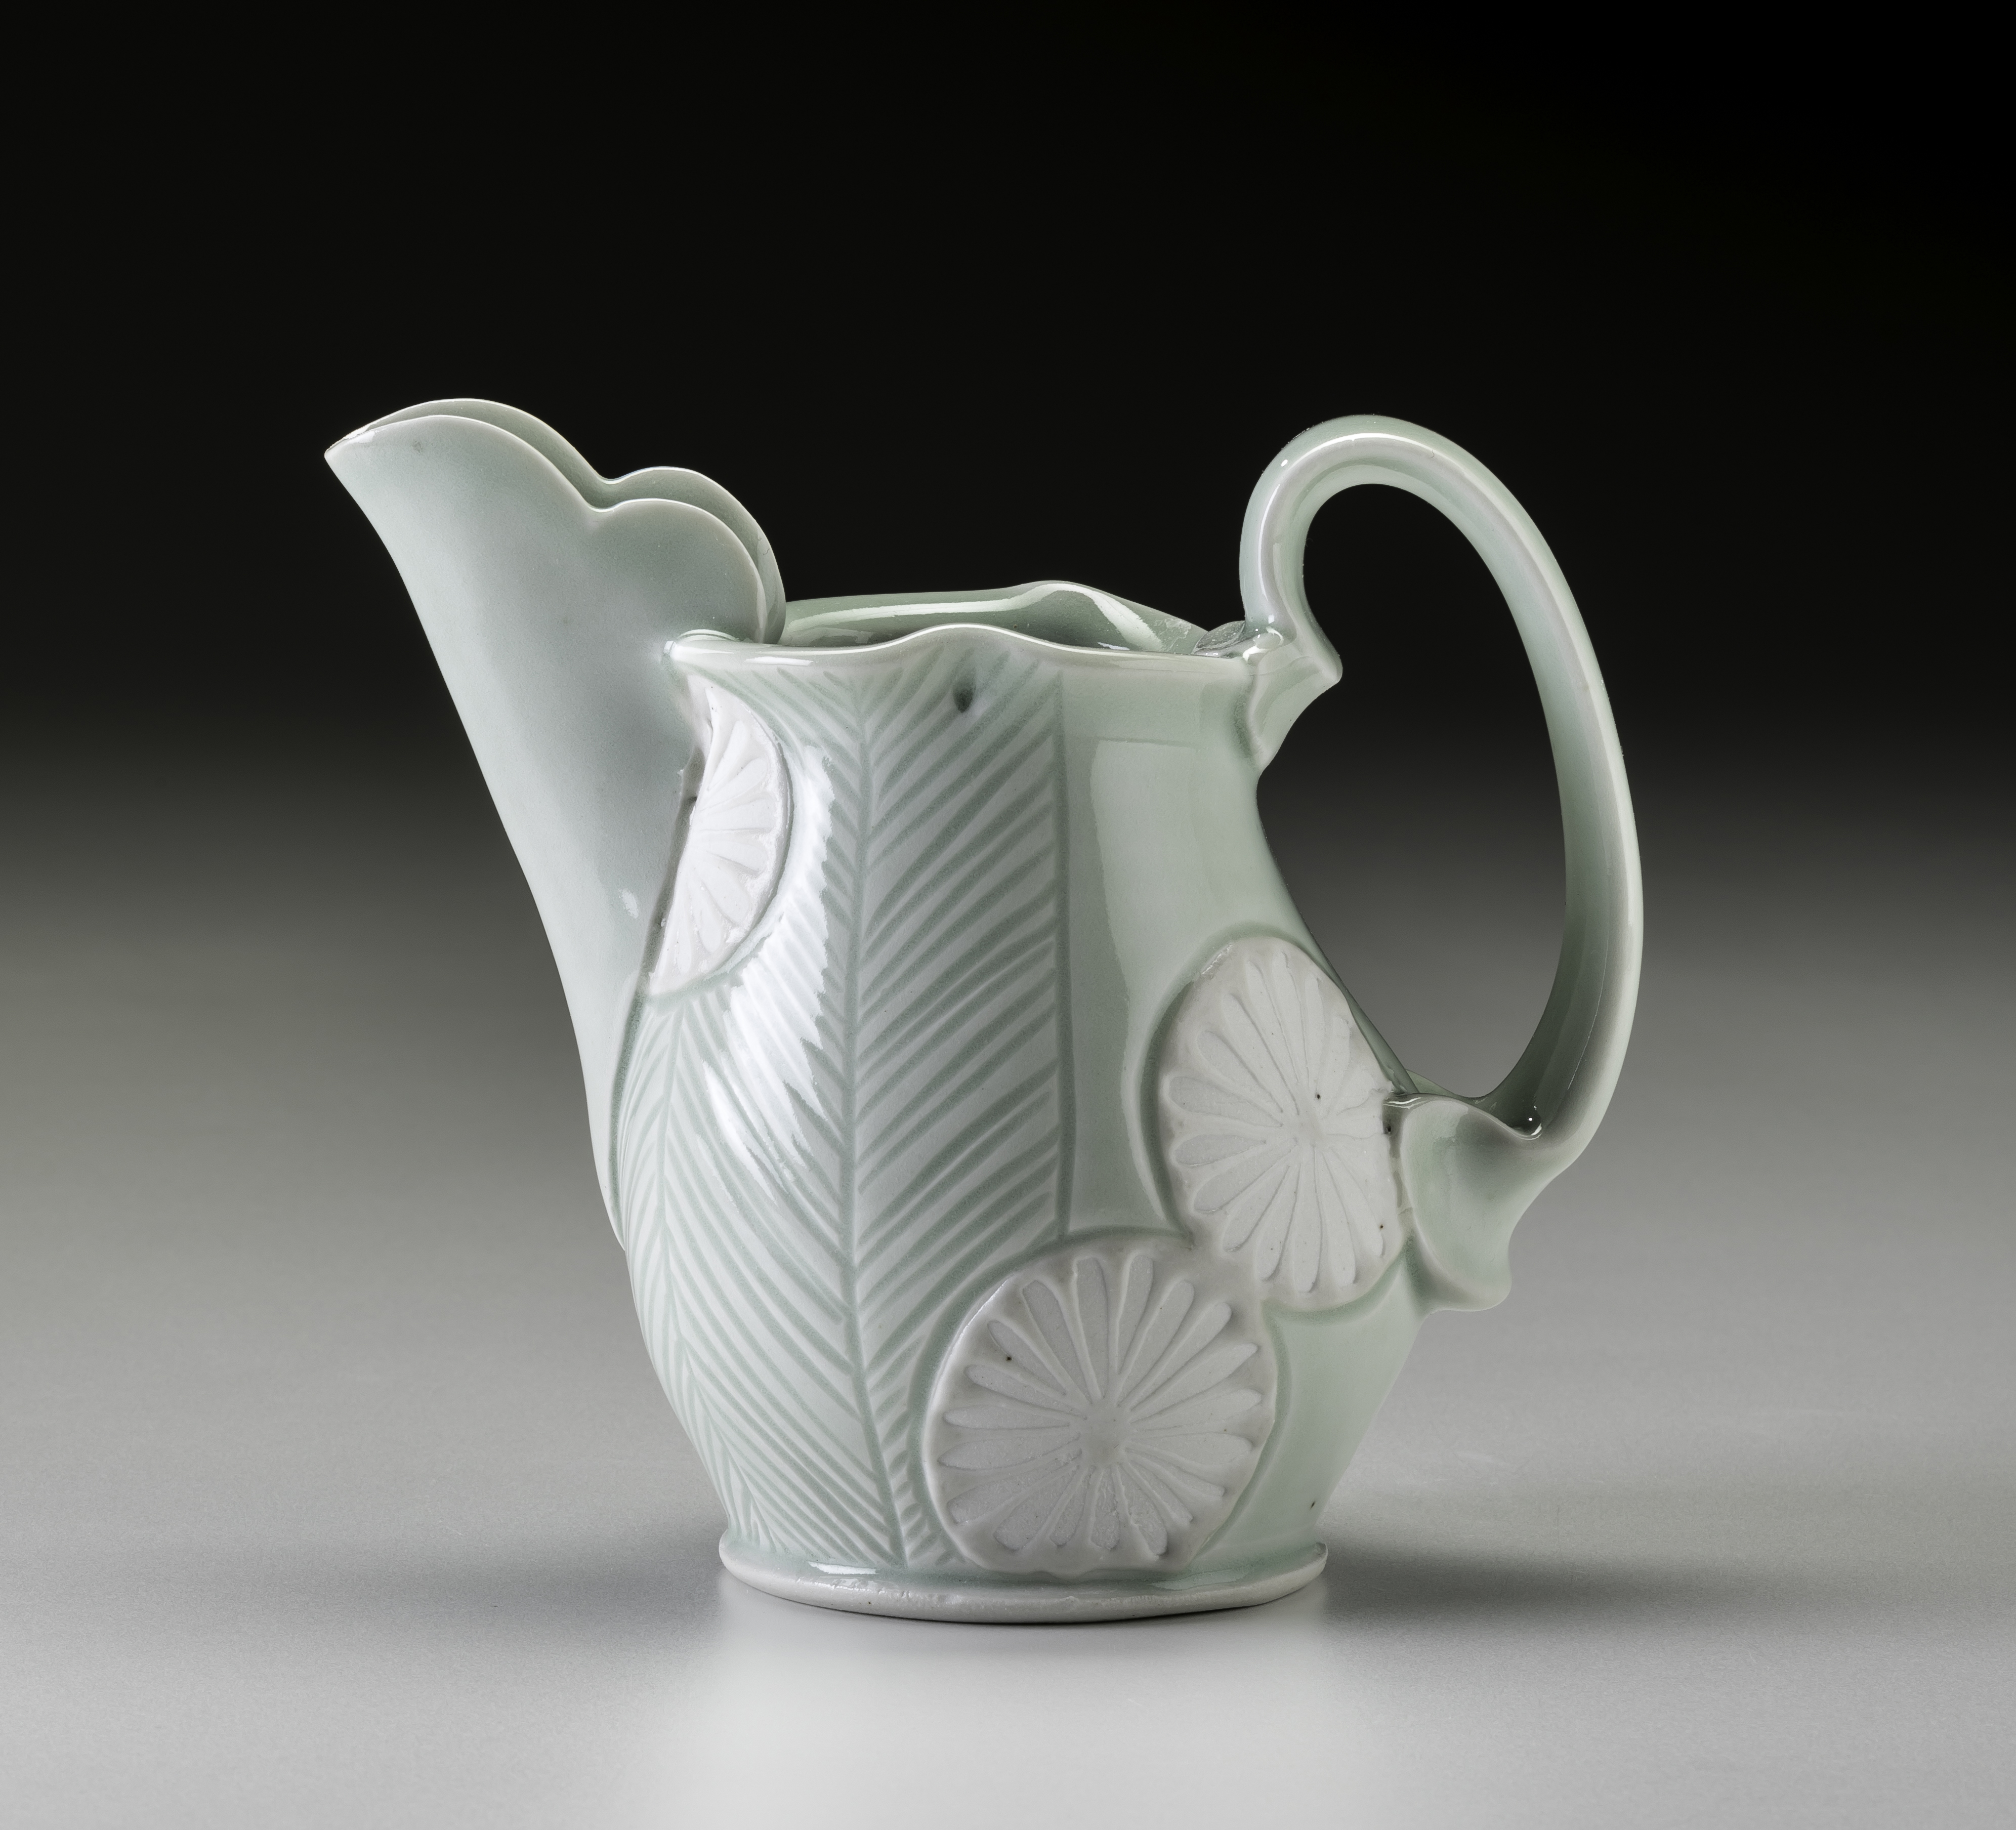 Functional Ceramics - Coming Soon to WCA!